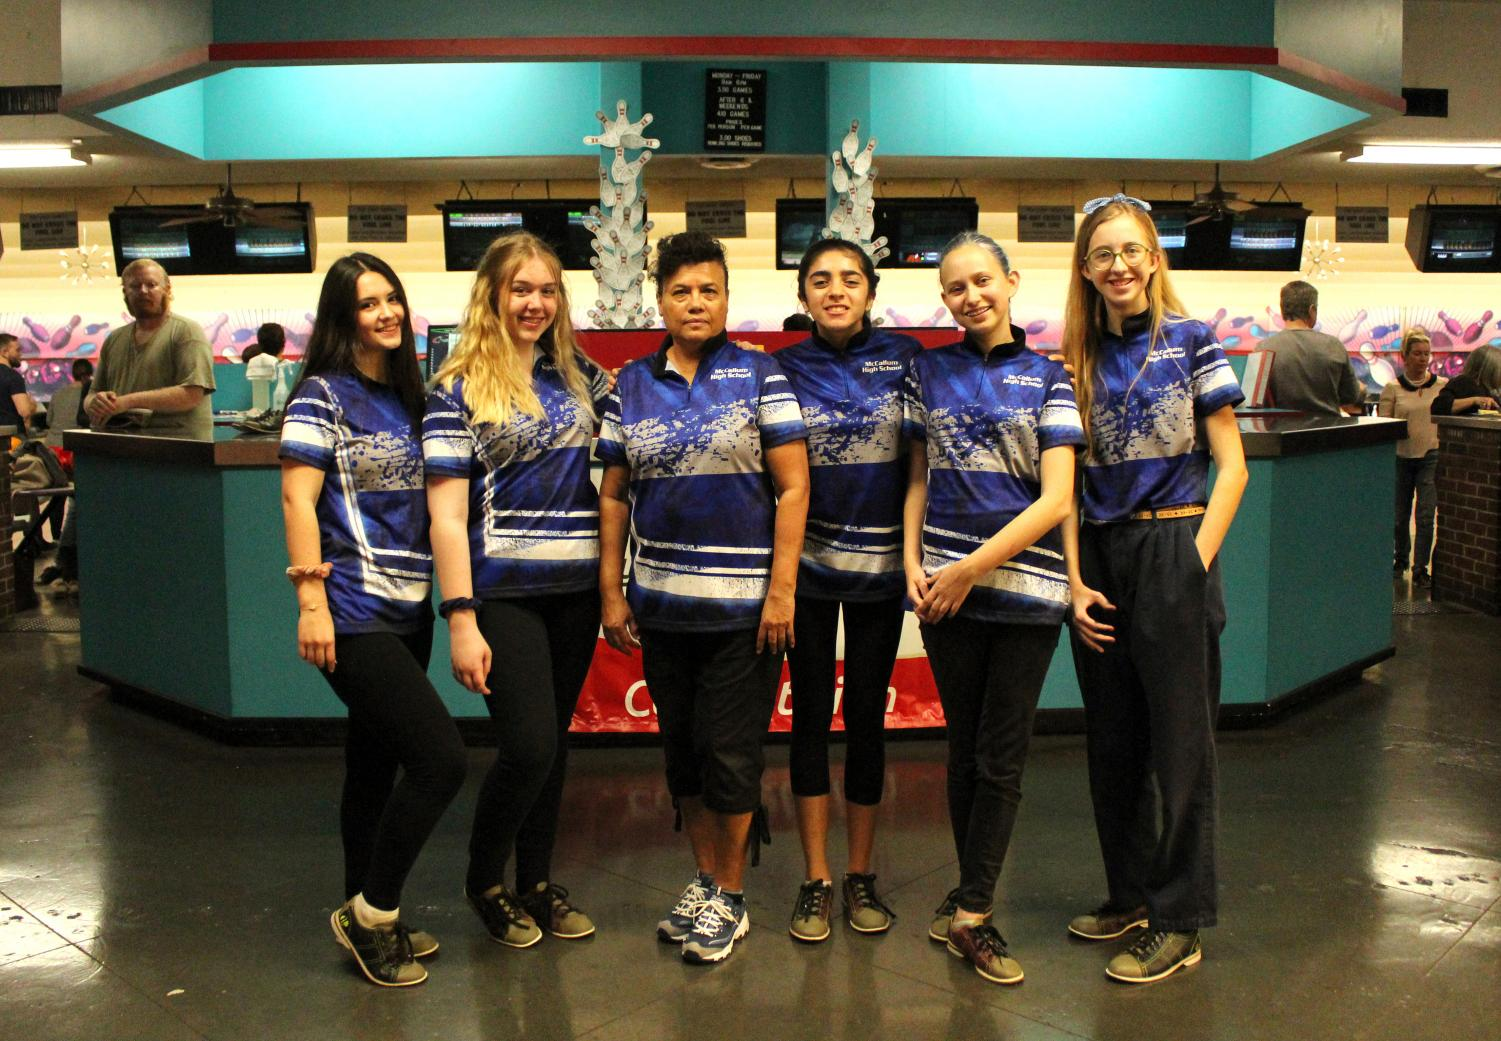 In its first year of competition, the girls bowling team--Rose Dotson, Ivy Golyzniak, Coach Amy Shivers, Frances Arellano, Zoey Rucker and Lulu Elliott--is undefeated in district play  and has only lost one non-district match the entire season. Photo by Carolina Arellano.